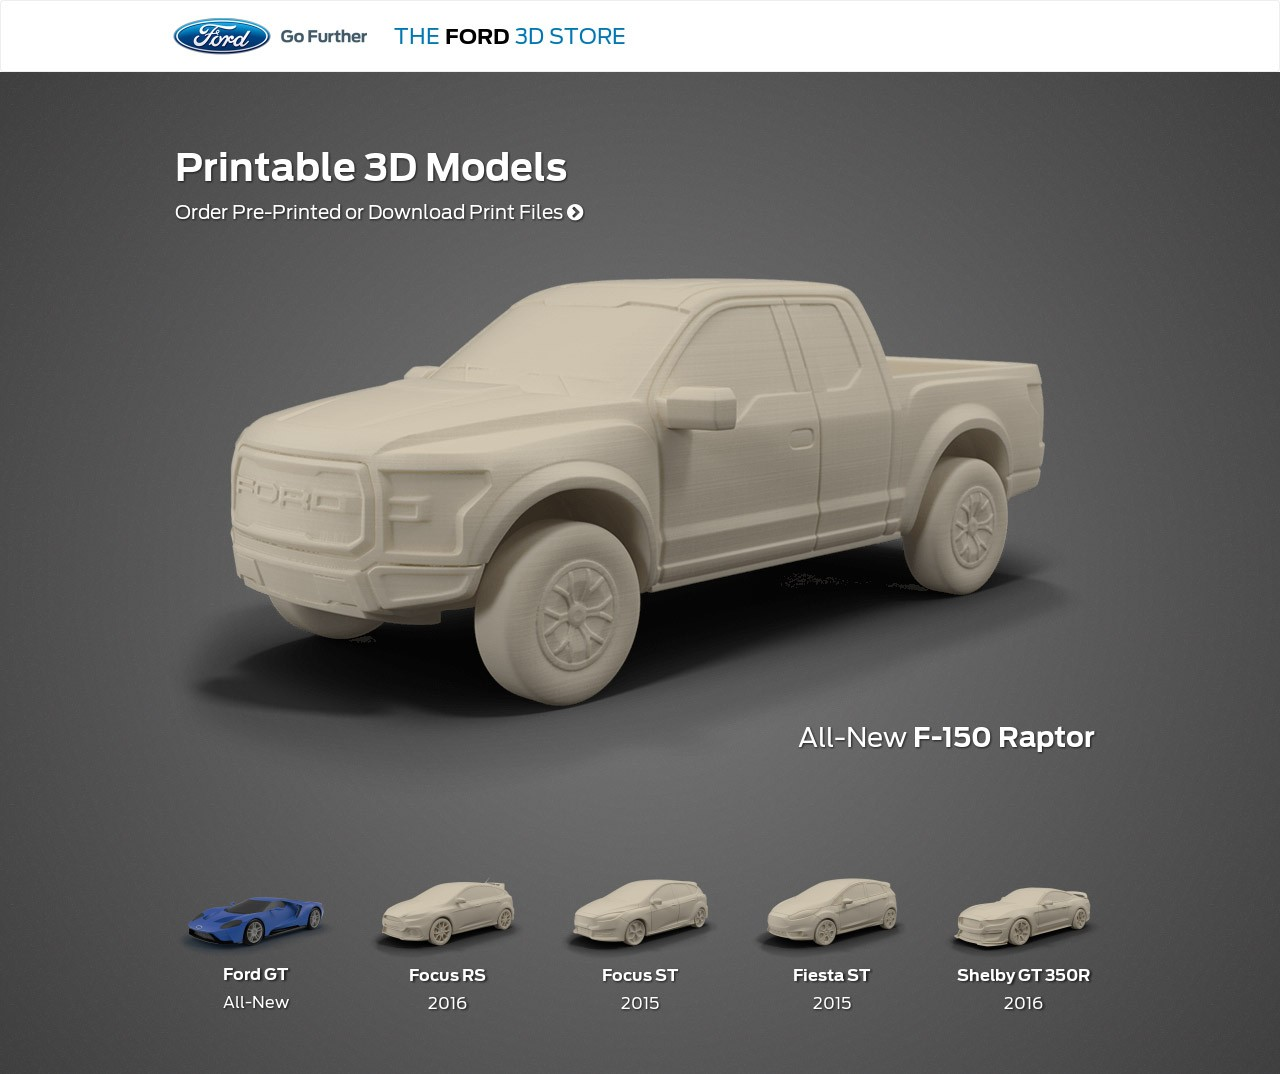 Ford Has A New 3D Printing Shop, Welcome To The Future